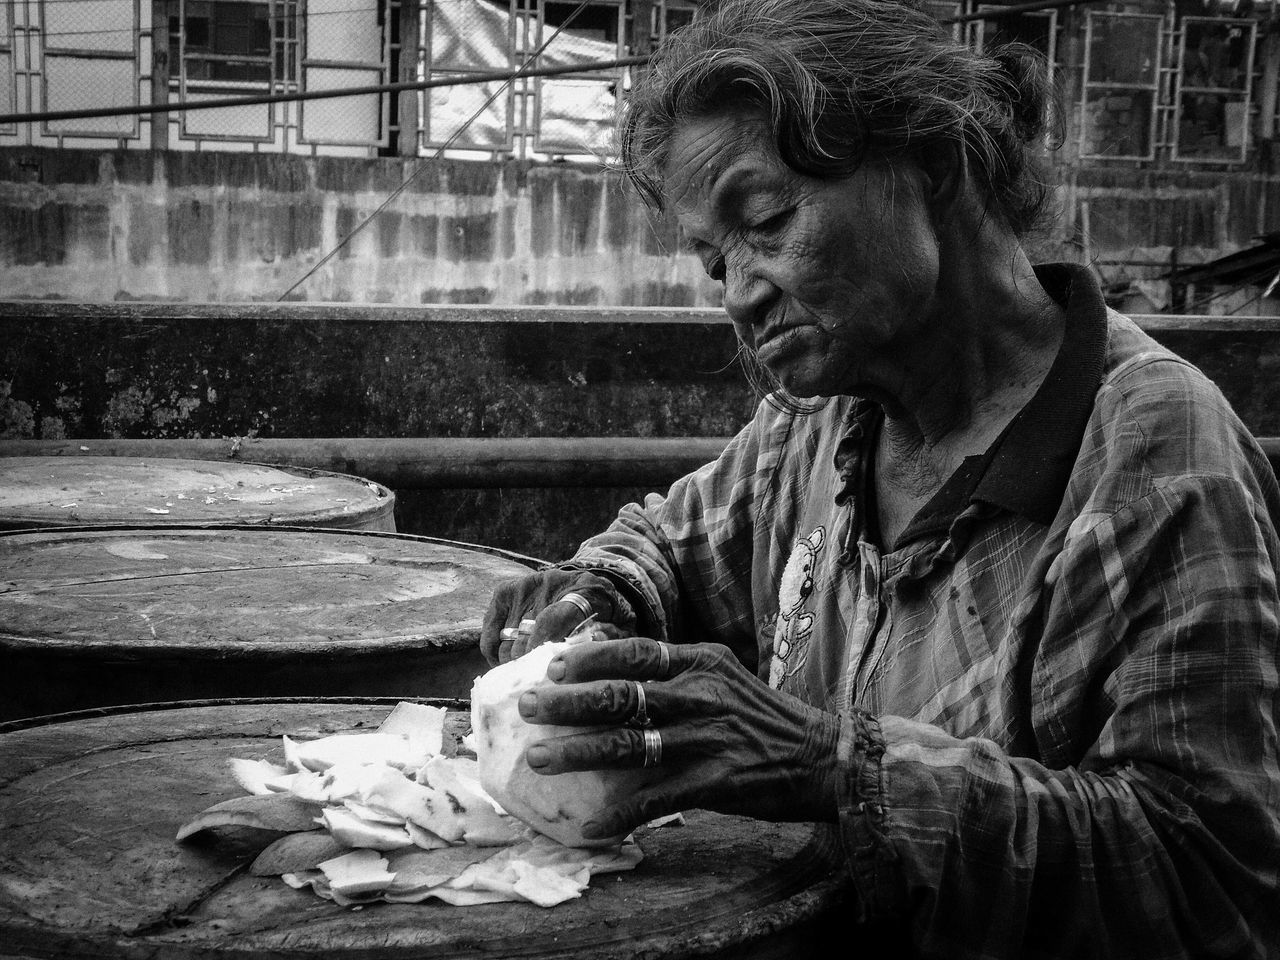 Real People One Person Documentary Photo Photojournalism Eyeem Philippines Monochrome Photography Street Photography Urban Scene Black And White Photography Urban Lifestyle Streetphotography People Photography Outdoors One Woman Only Woman At Work Monochrome